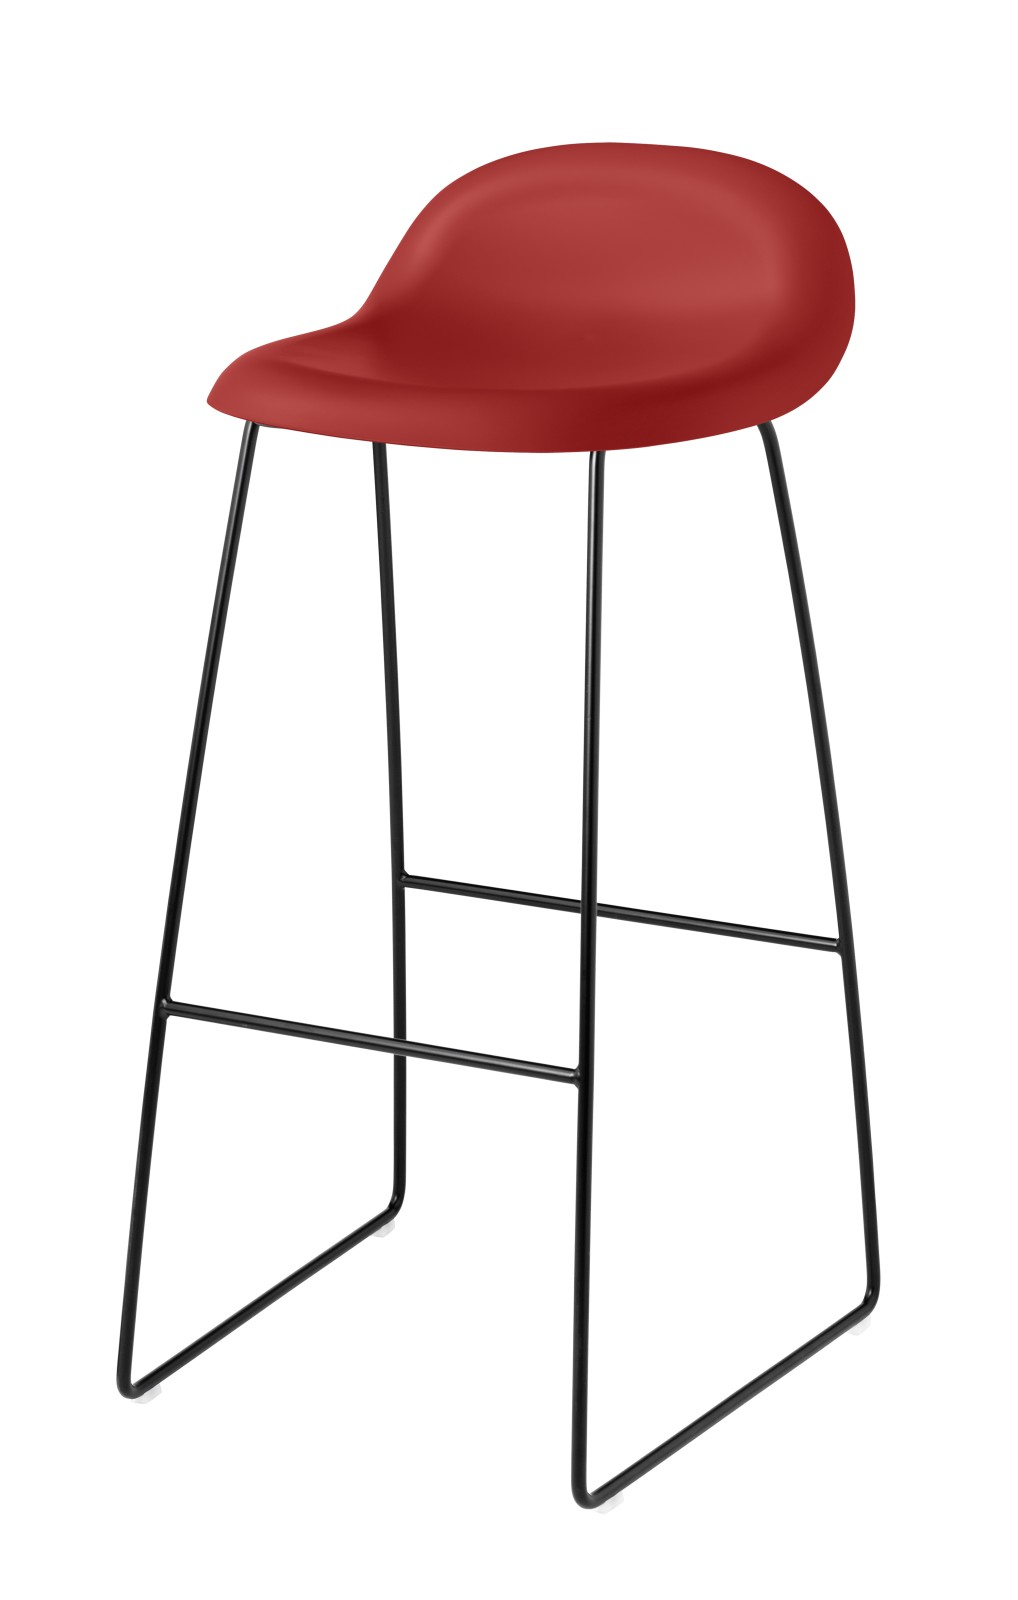 Gubi 3D Sledge Base Bar Stool - Unupholstered Gubi HiRek Shy Cherry, Gubi Metal Black